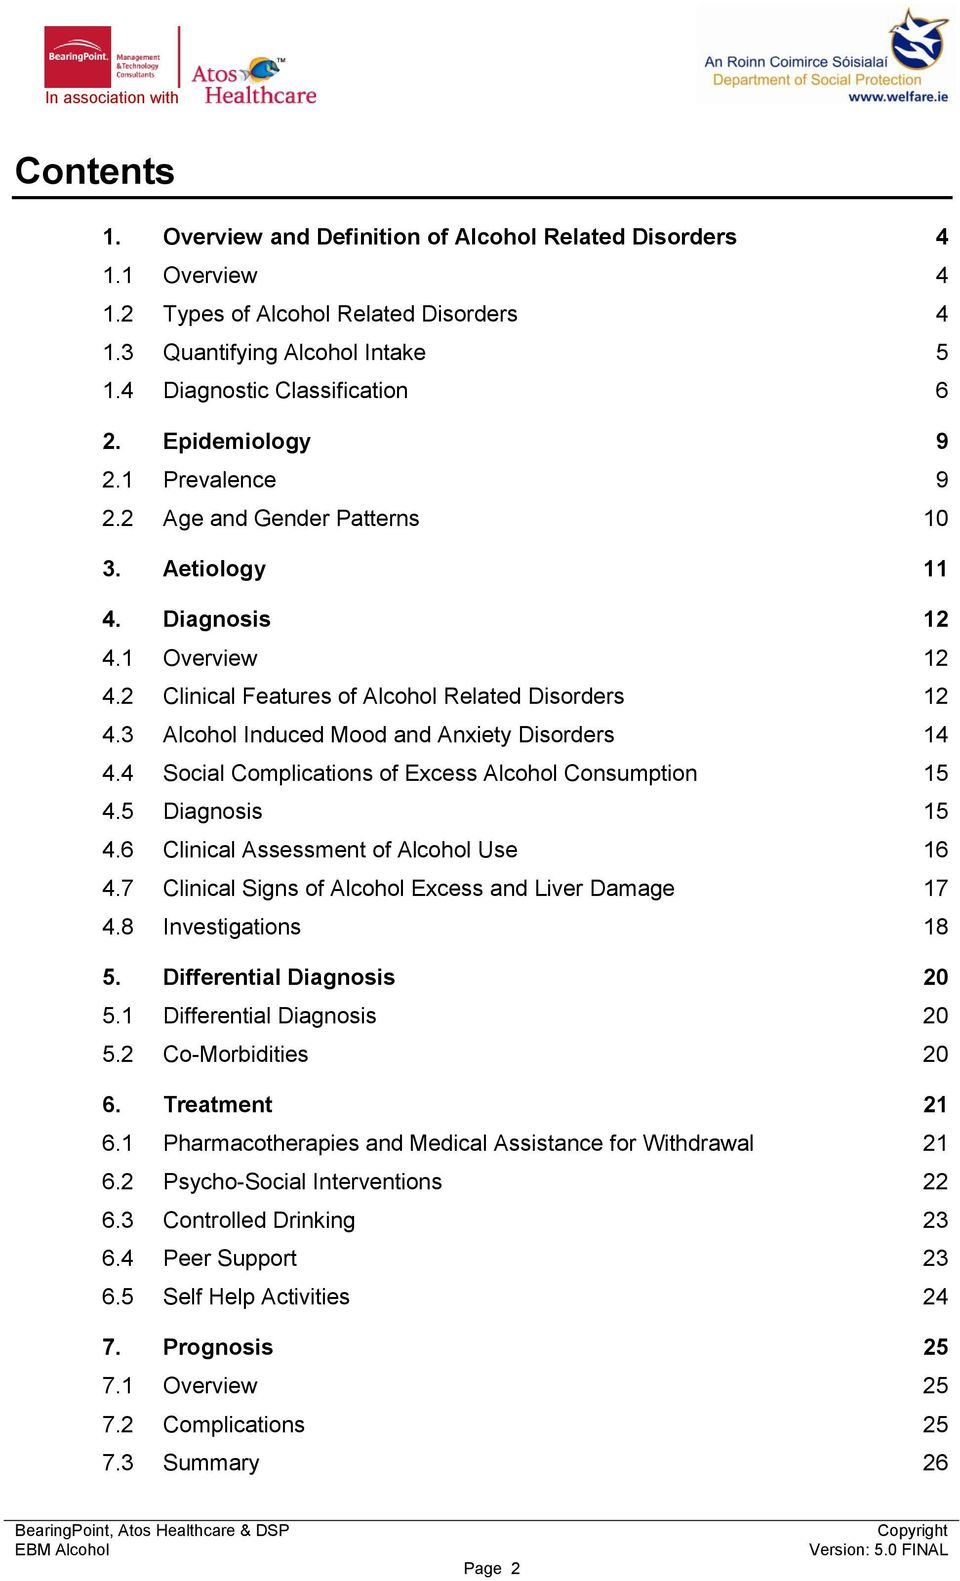 3 Alcohol Induced Mood and Anxiety Disorders 14 4.4 Social Complications of Excess Alcohol Consumption 15 4.5 Diagnosis 15 4.6 Clinical Assessment of Alcohol Use 16 4.